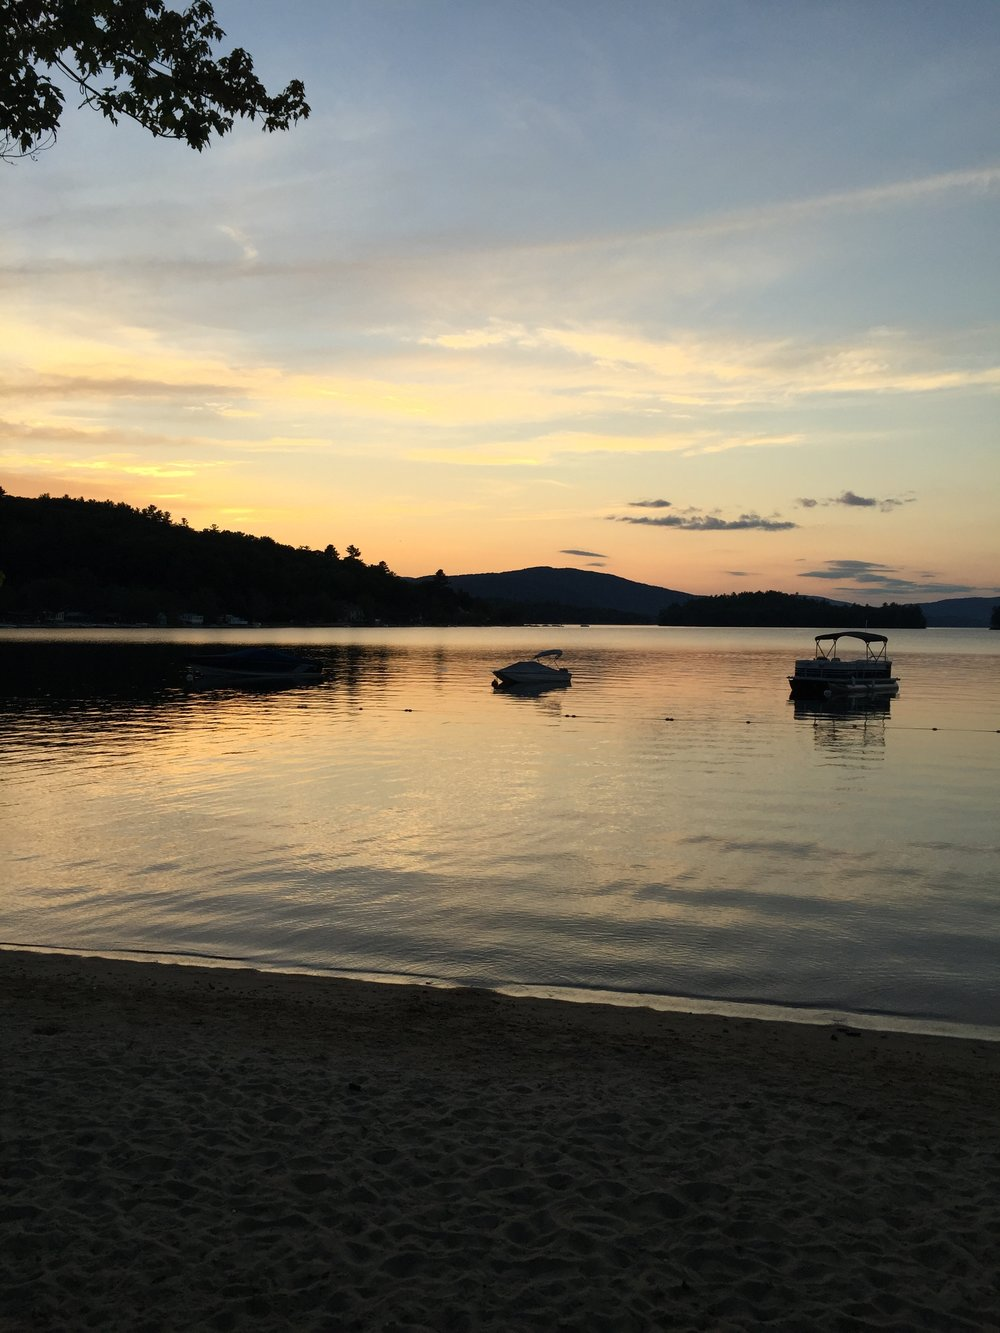 Newfound Lake at sunset